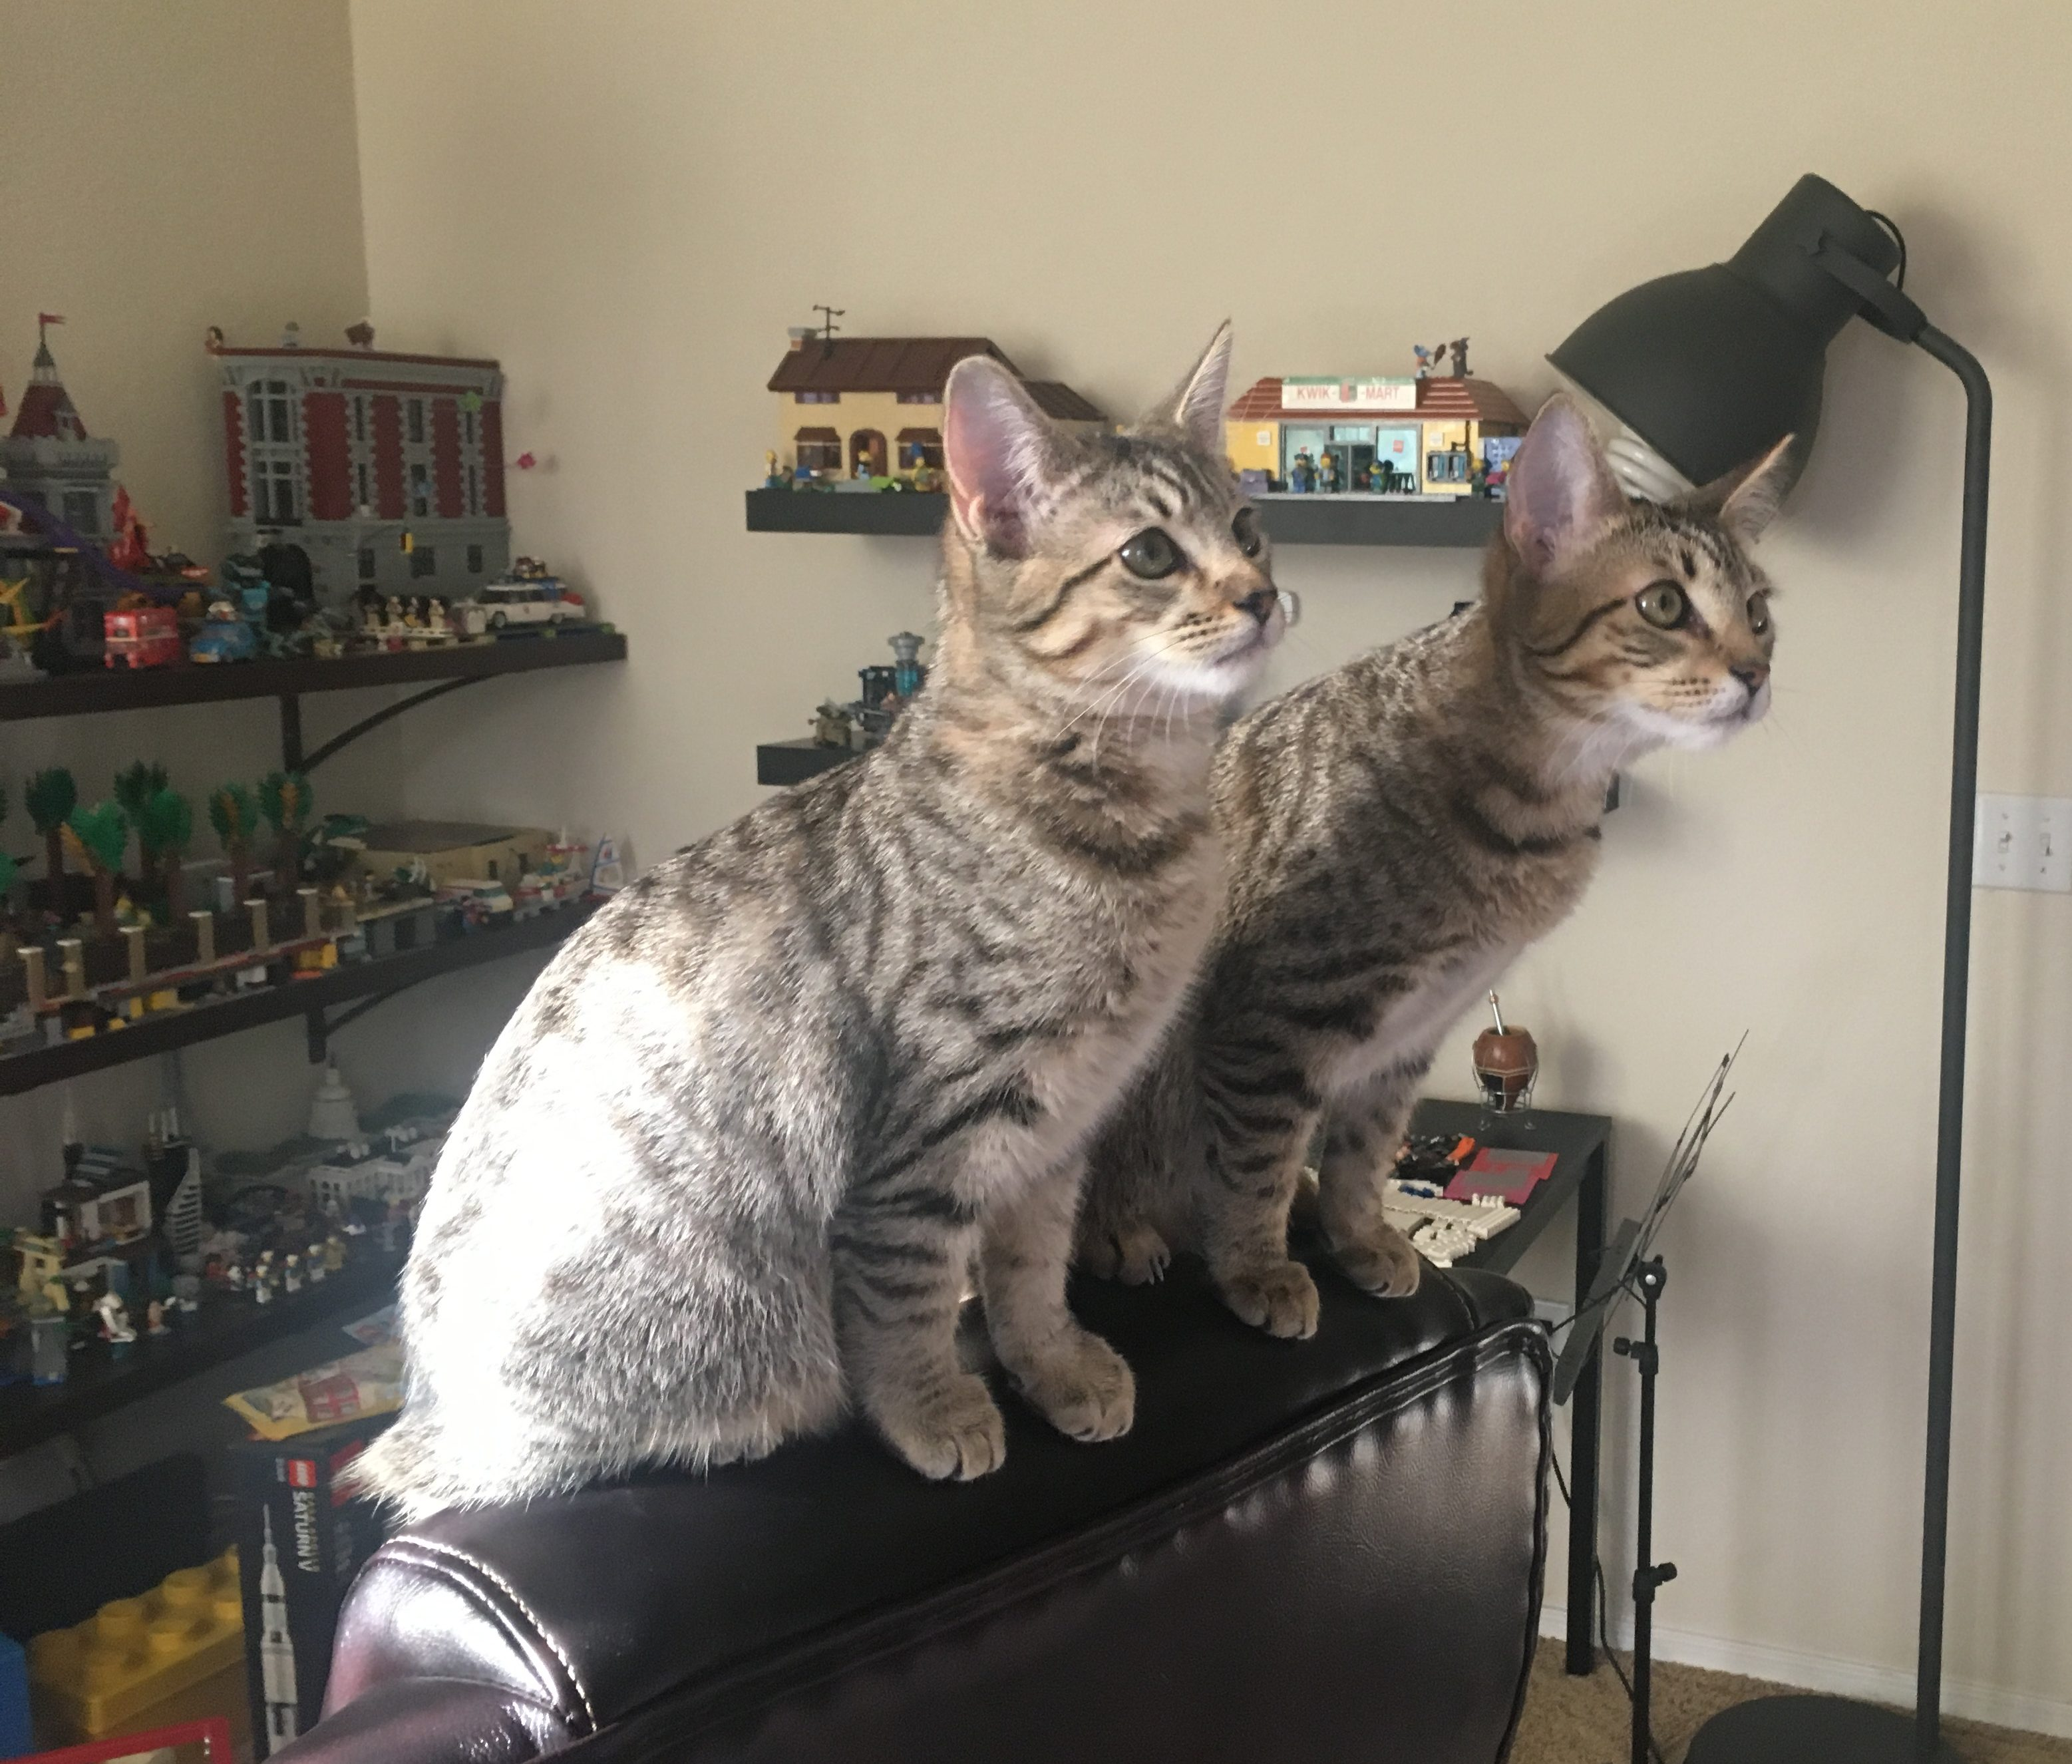 The Kittens at 4 Months – HiJenx